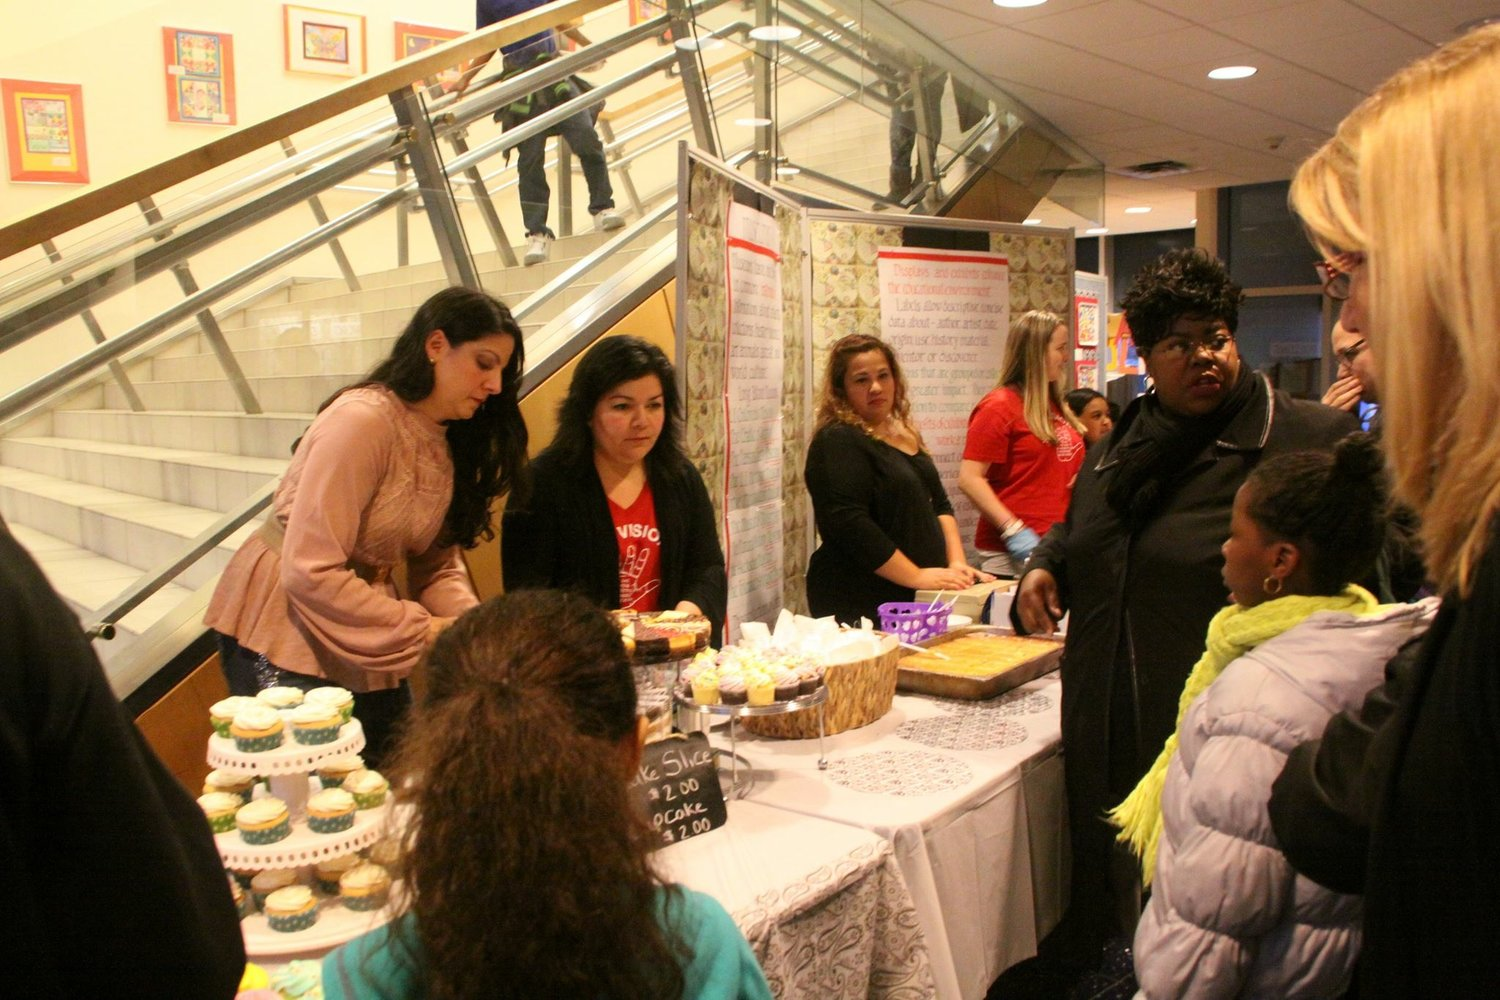 Maria Jordan-Awalom, second from left, helped out during a school bake sale.